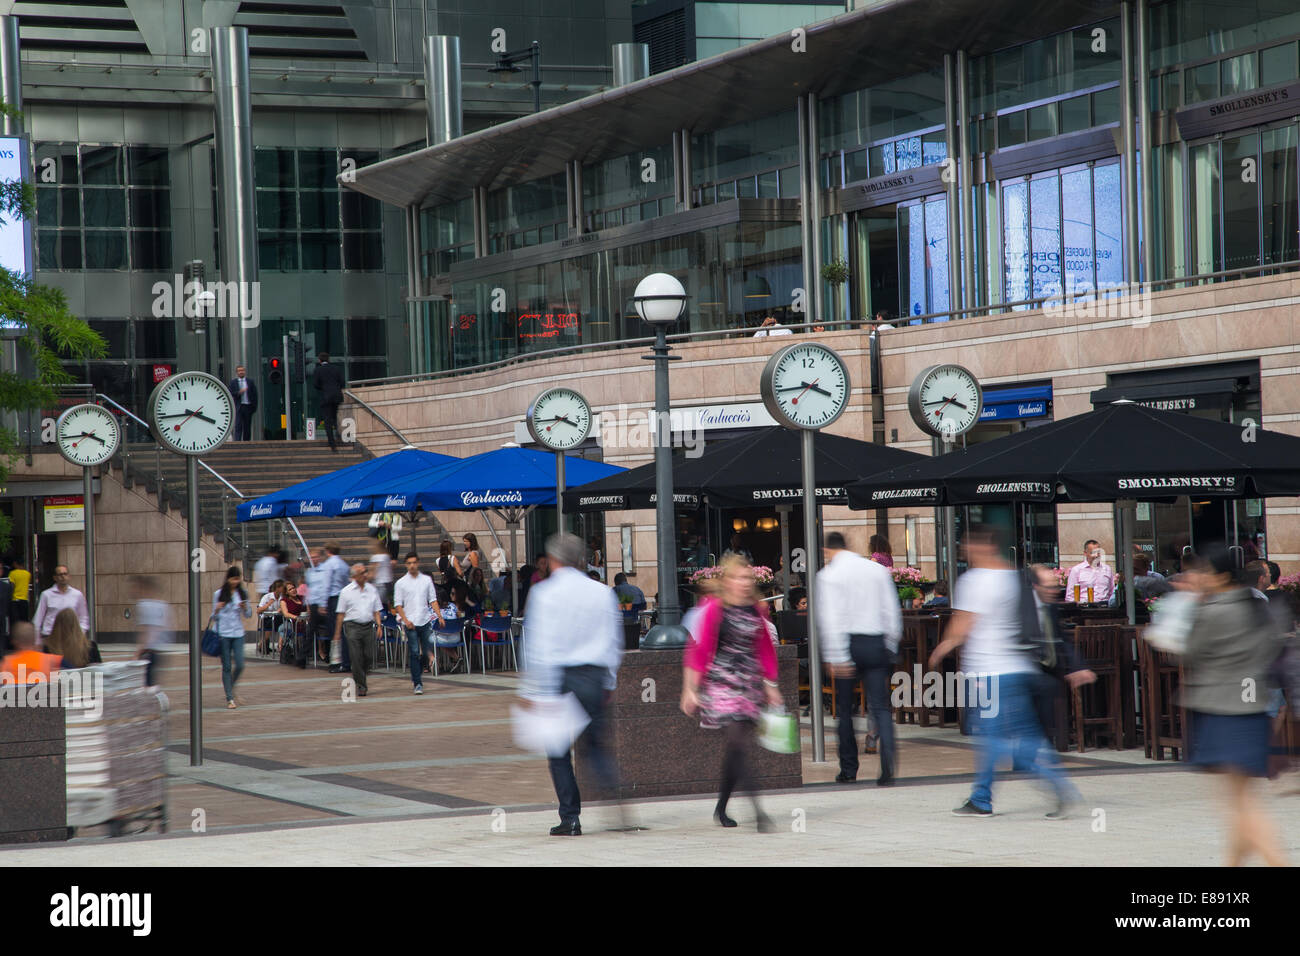 Concourse at Canary wharf showing business people enjoying a stroll at lunchtime - Stock Image